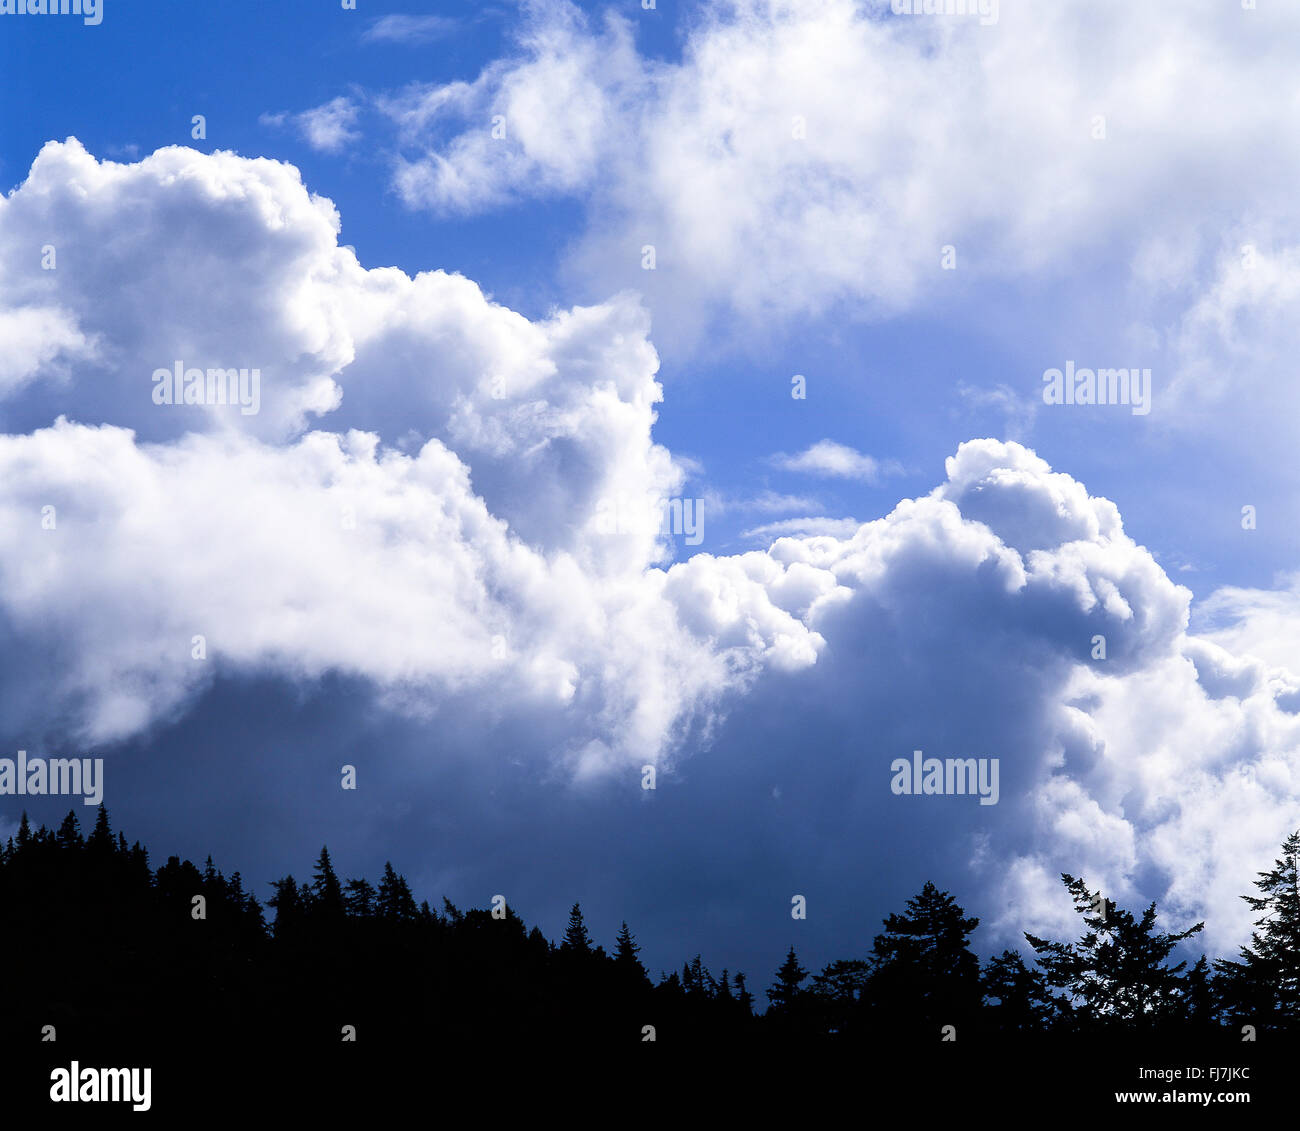 Storm clouds approaching, Berkshire, England, United Kingdom - Stock Image